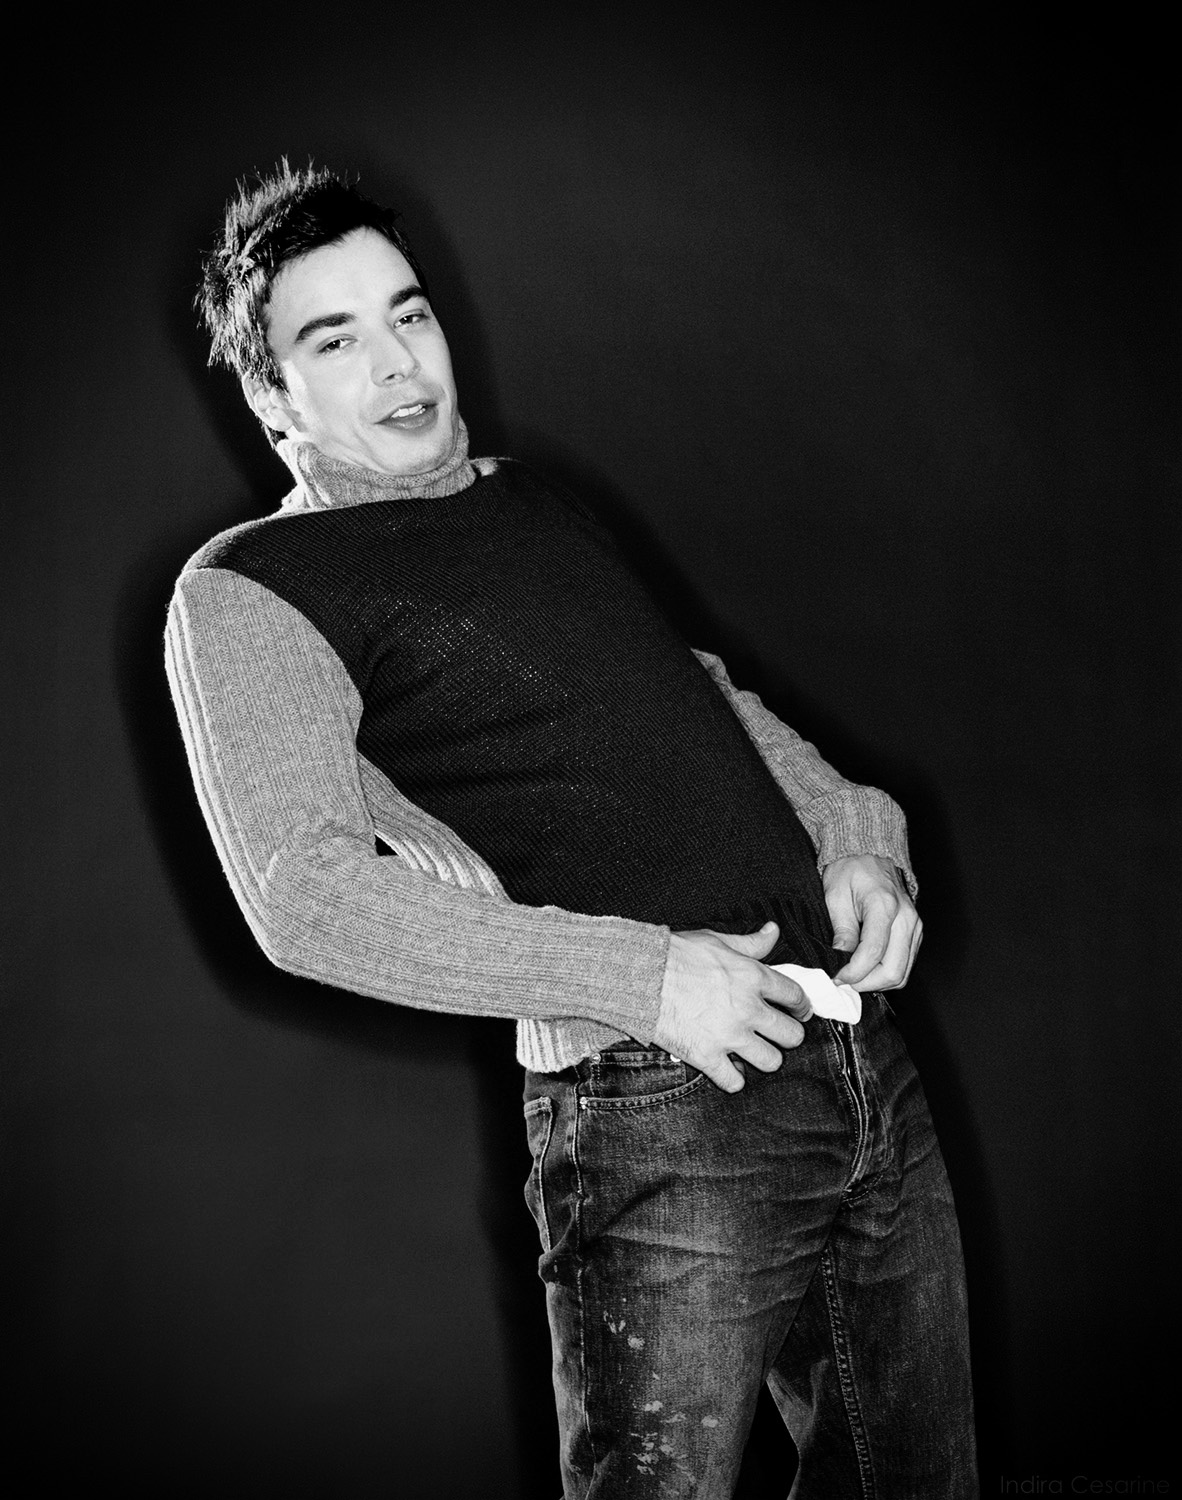 JIMMY-FALLON-Photography-by-Indira-Cesarine-002-bw.jpg